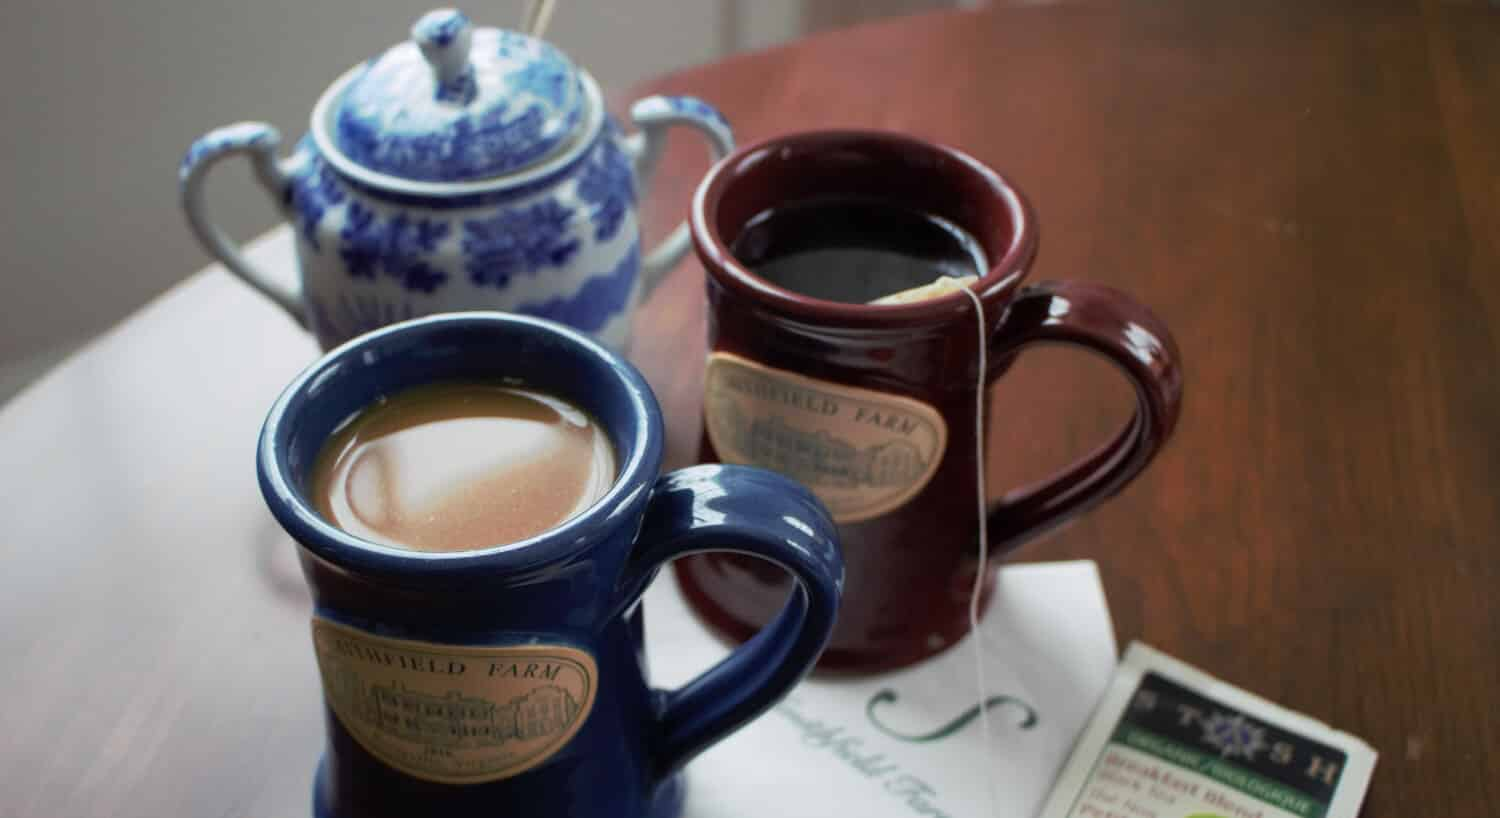 Two coffee mugs with the Smithfield Farm Bed and Breakfast logo on them